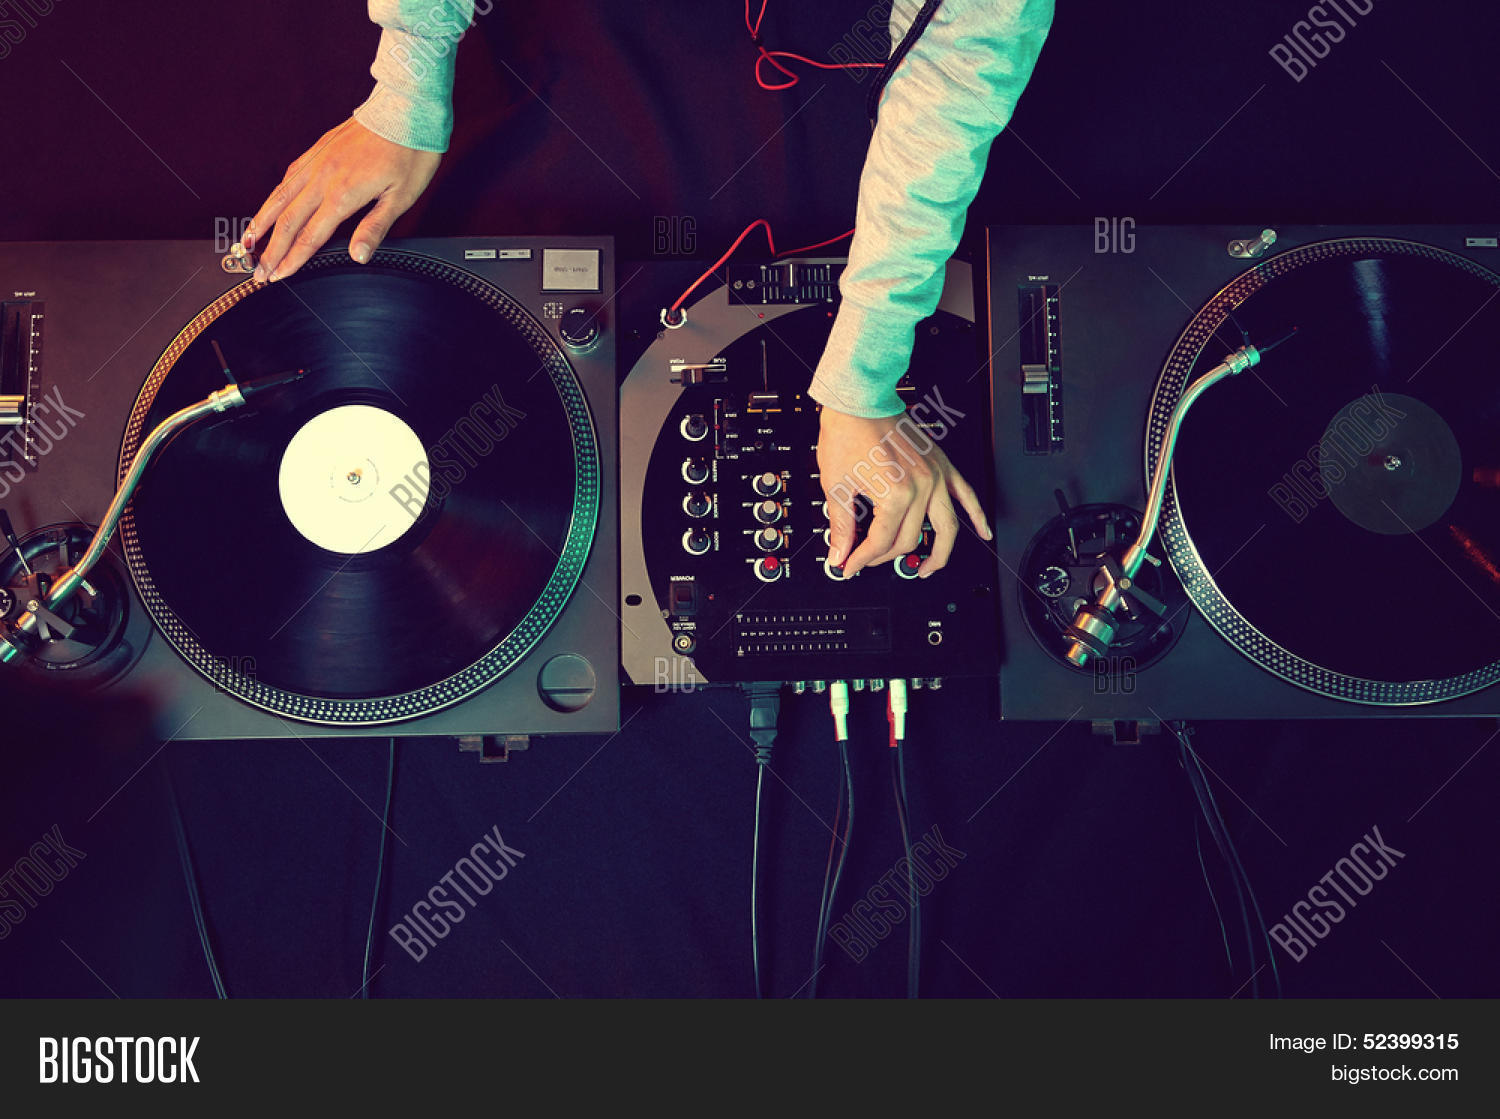 dj hands on equipment image photo free trial bigstock